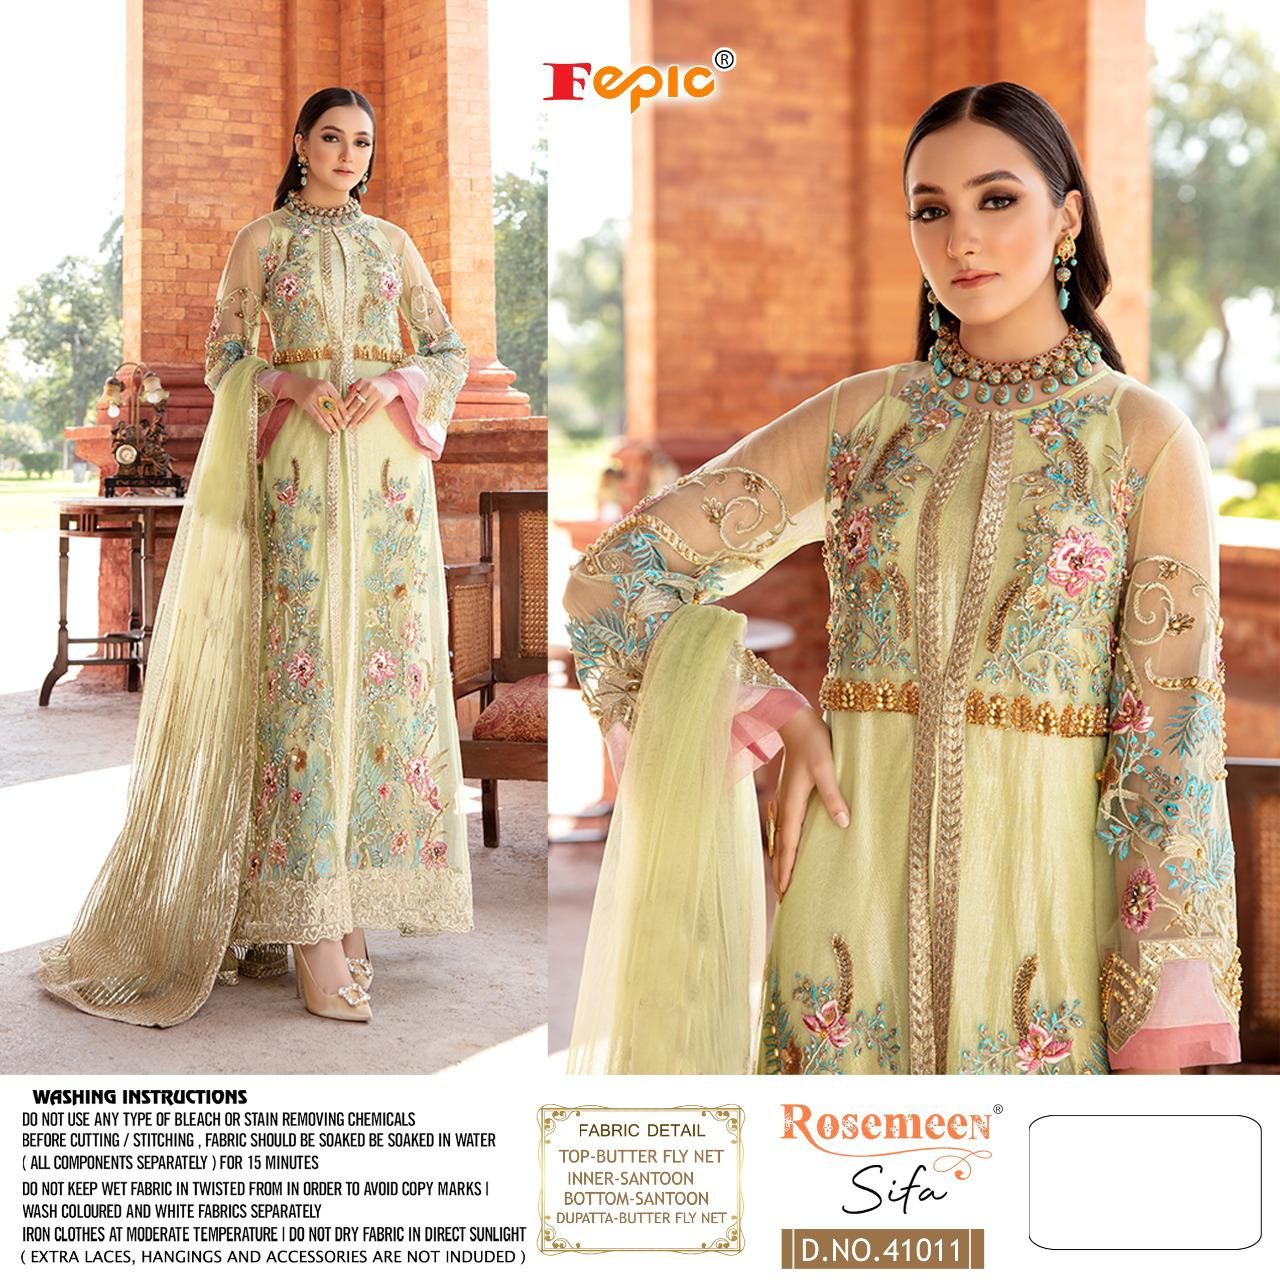 Fepic Rosemeen Sifa Faux Georgette With Heavy Embroidery Work Pakistani Collection At Wholesale Rate